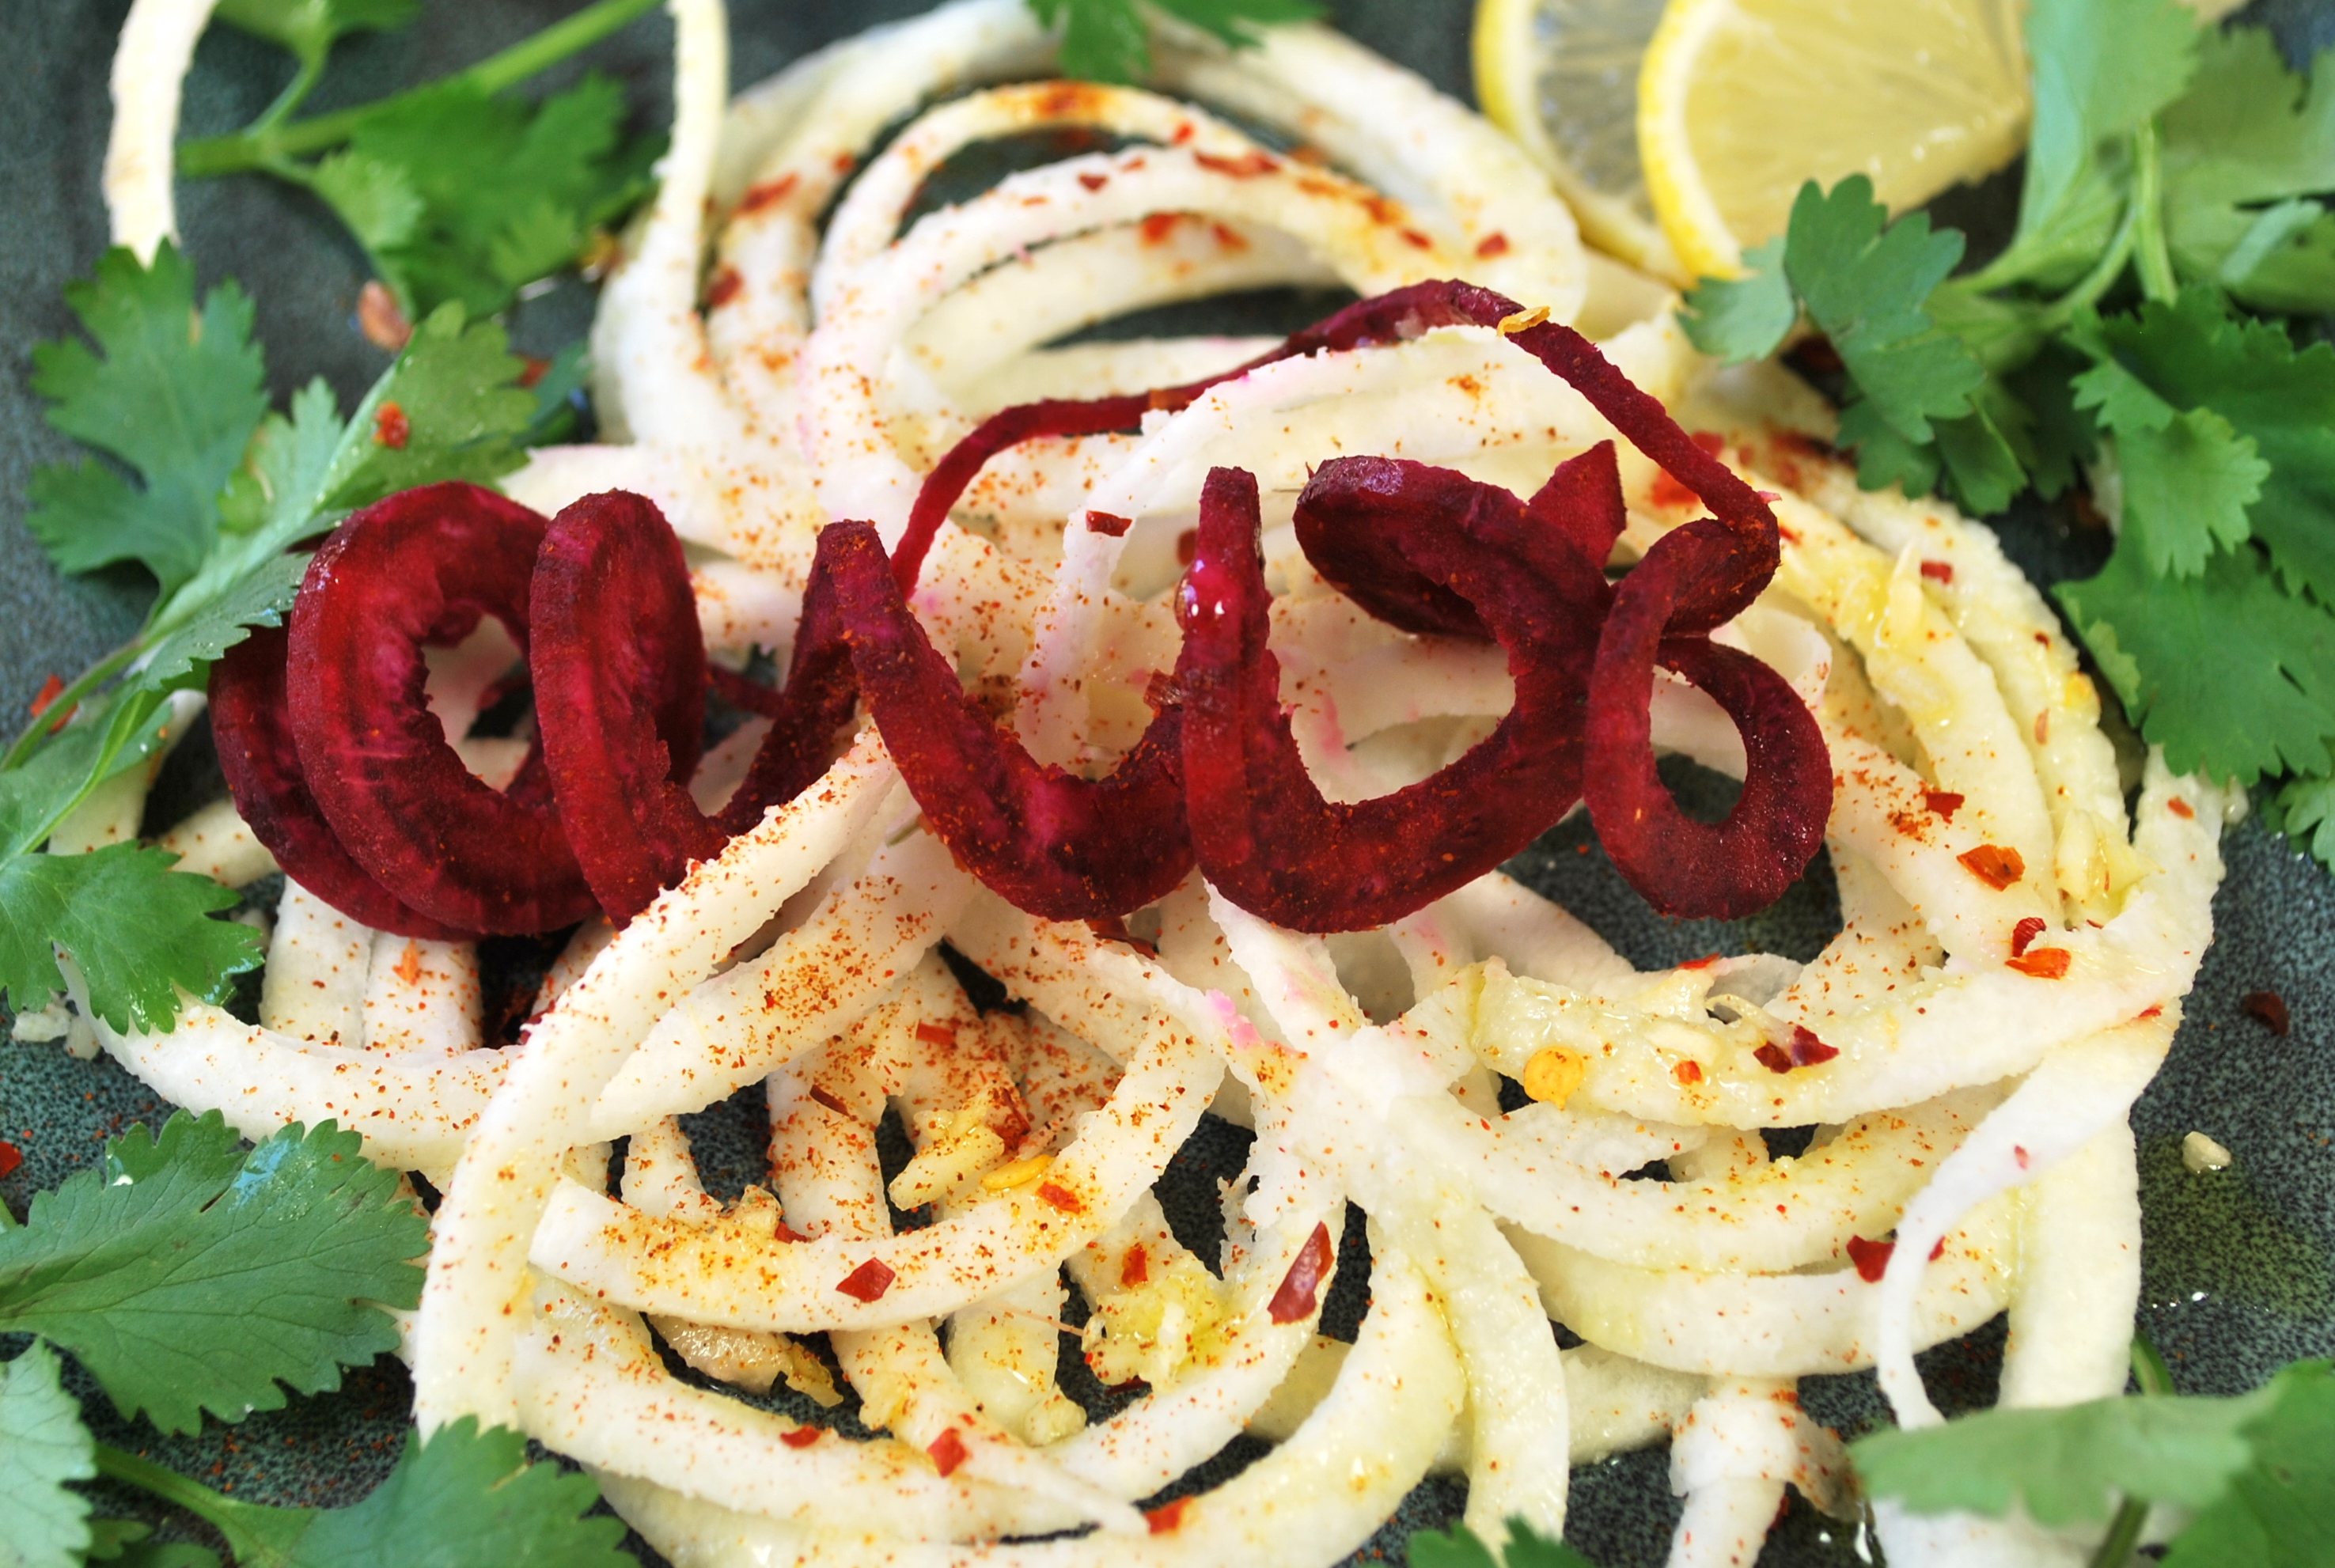 spiralizing recipes - salads - south of the border jicama salad